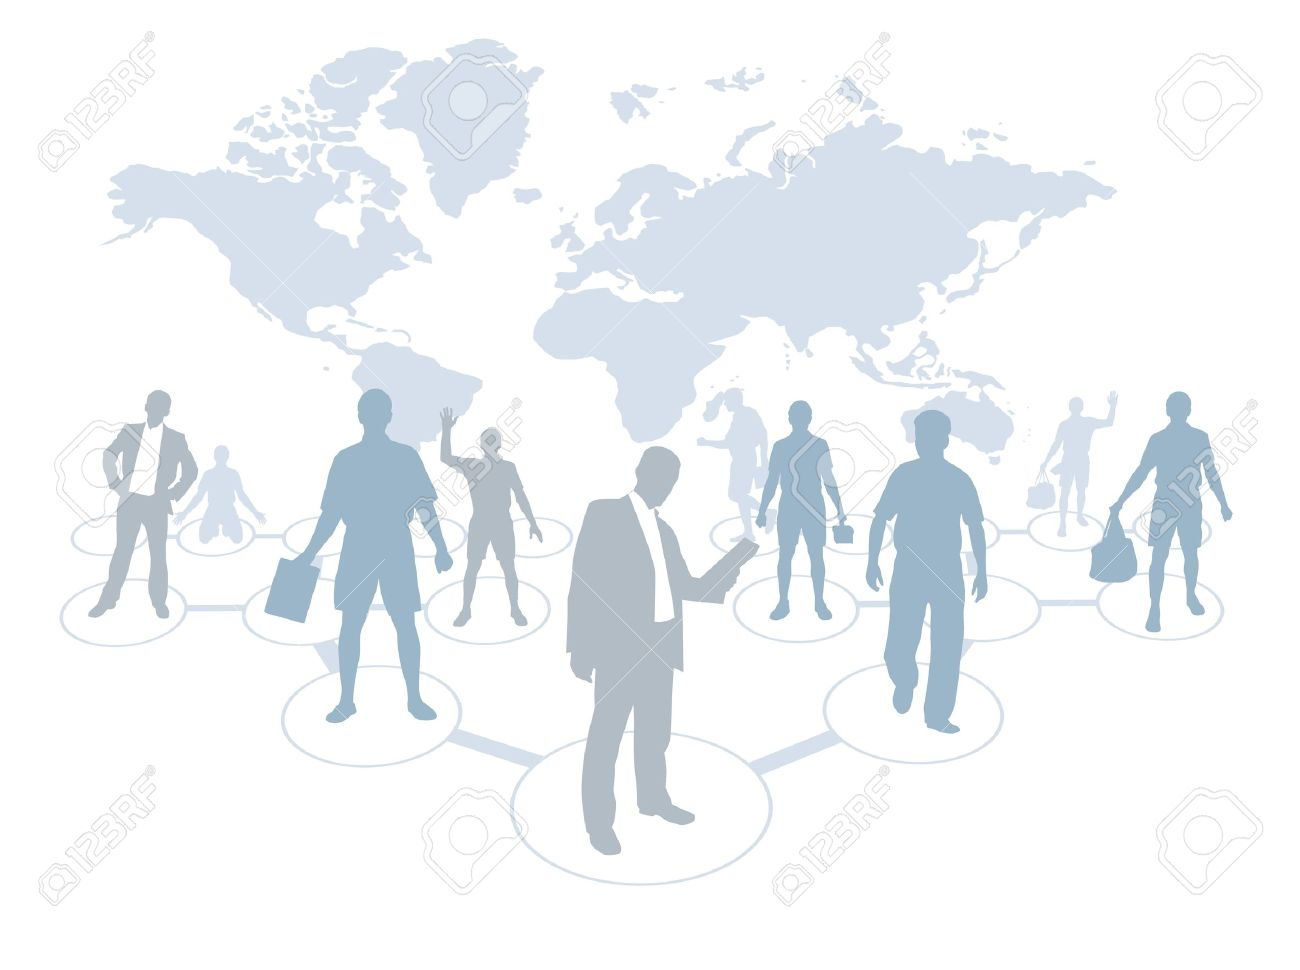 Business People With World Map Background Royalty Free Cliparts